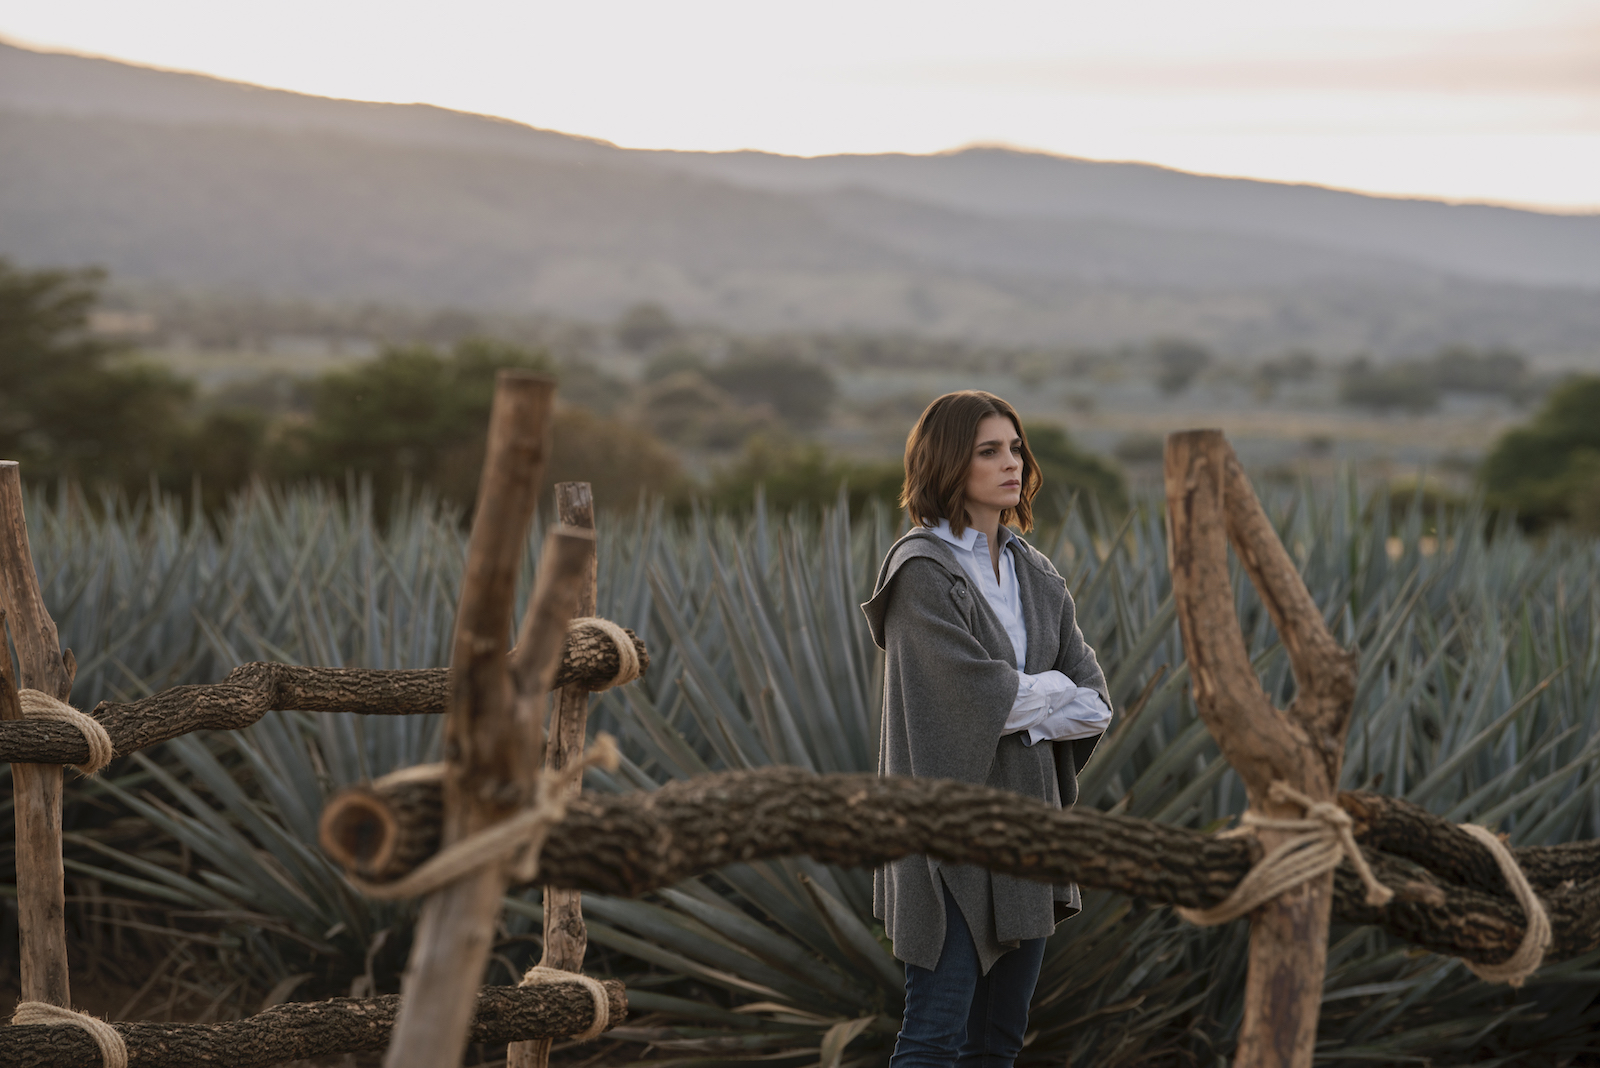 TRAILER: Netflix's No. 1 Series in Mexico, 'Monarca,' Is About a Rich & CorruptFamily